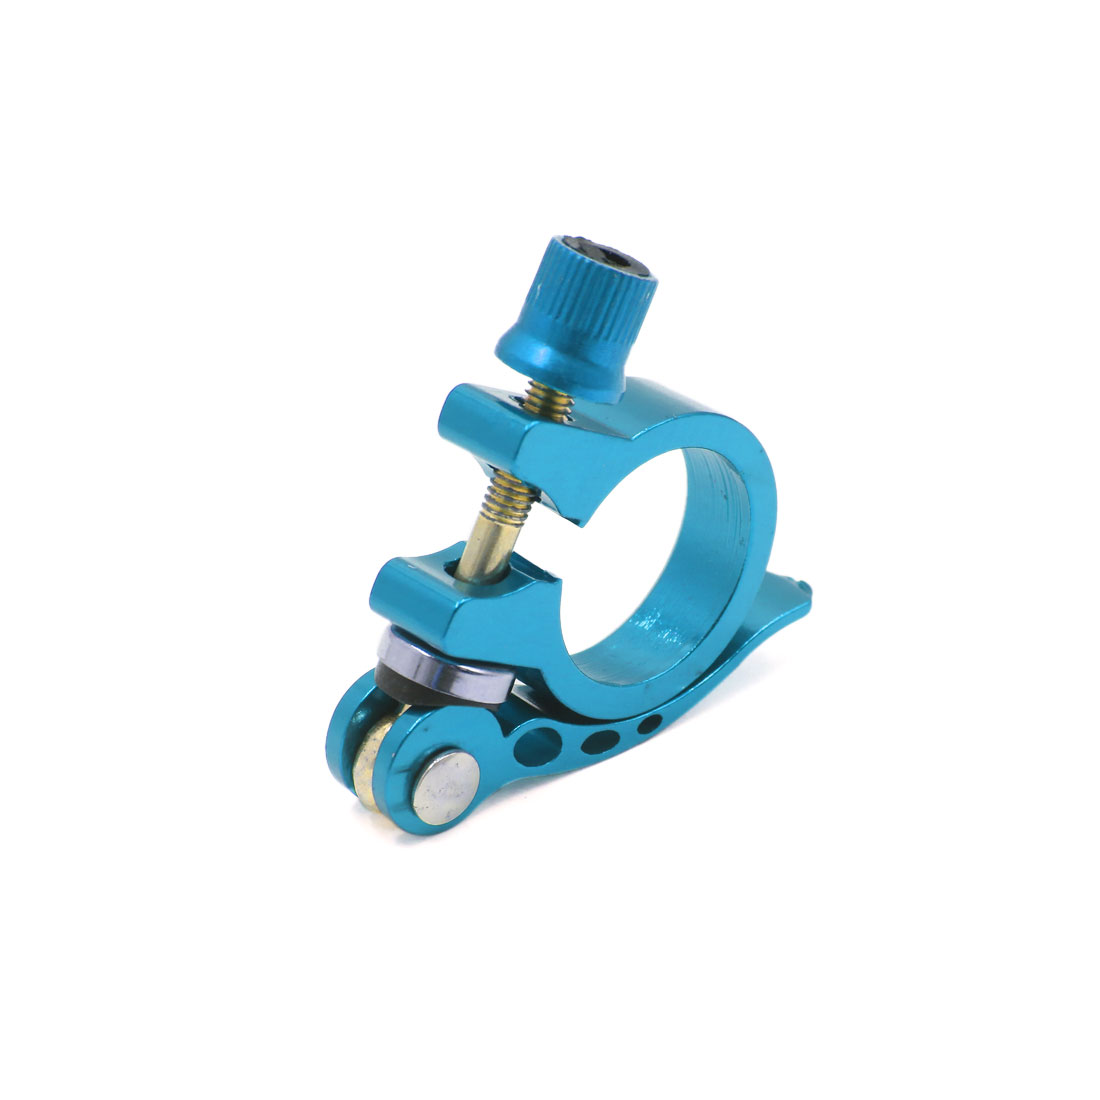 28.6mm Dia Blue Aluminum Alloy Bicycle Bike MTB Quick Release Seat Post Clamp